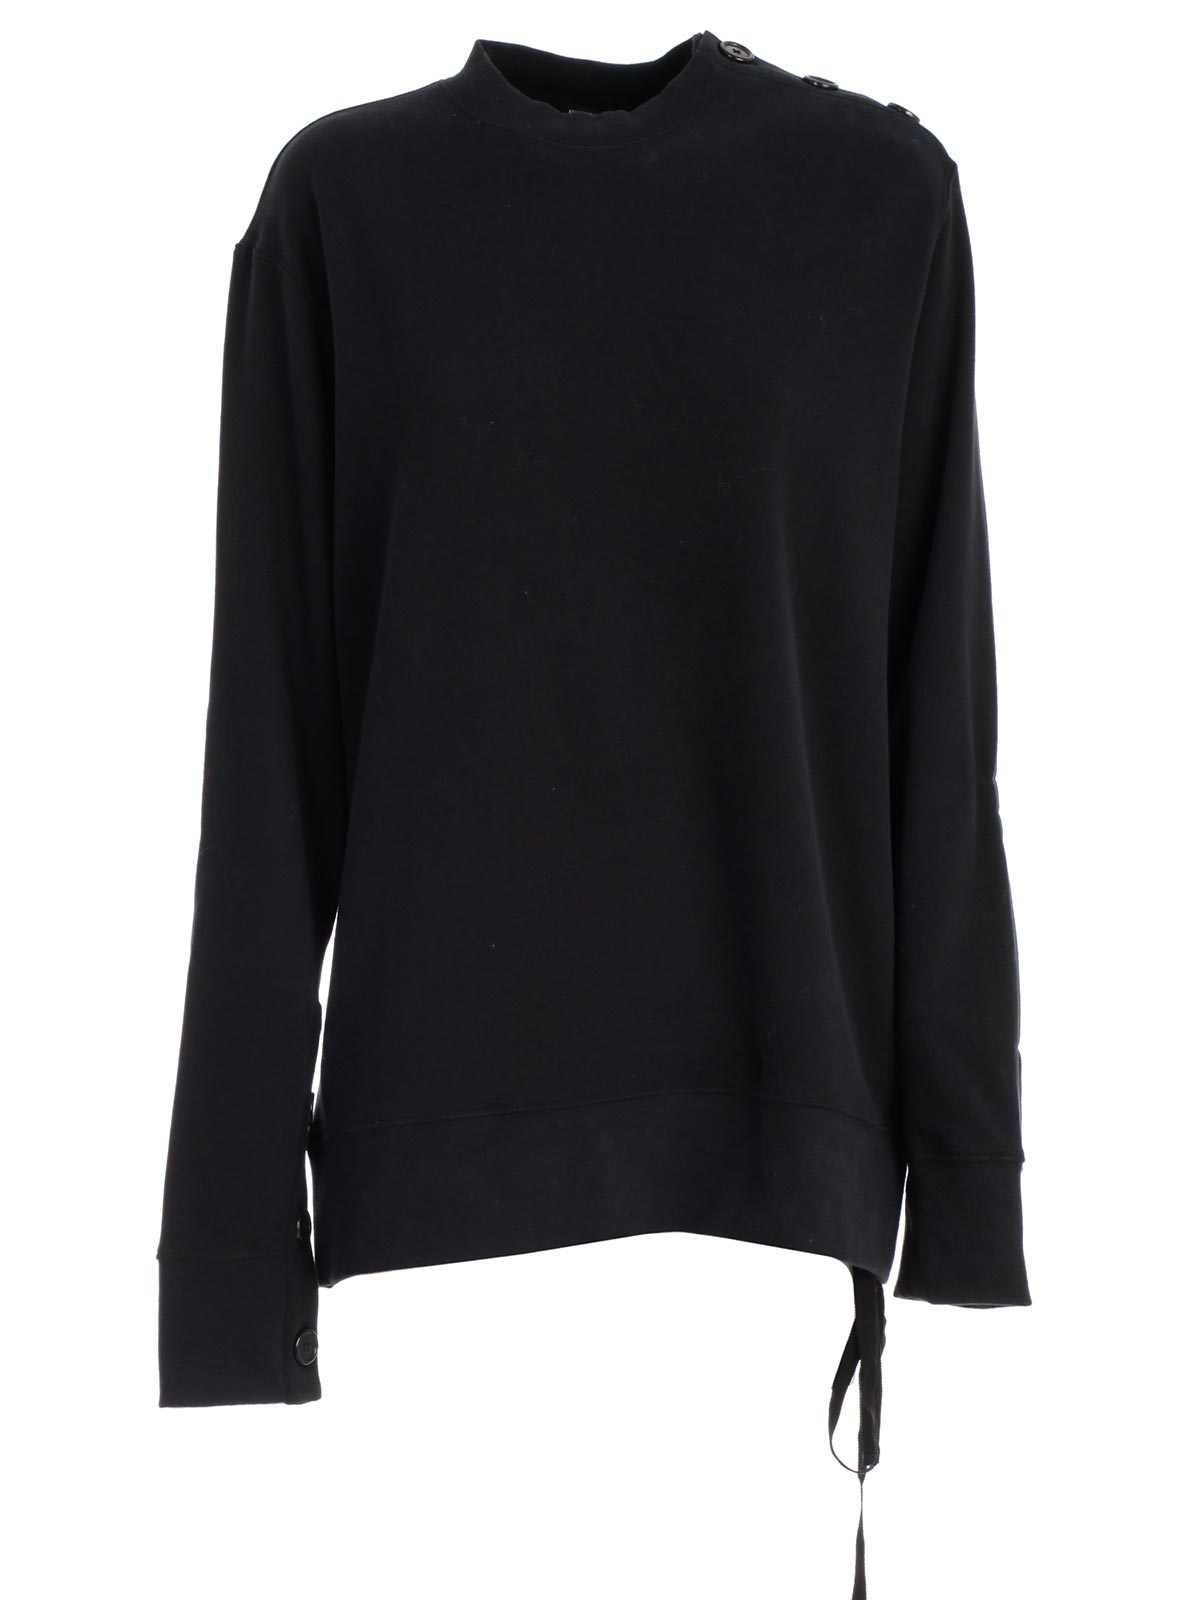 Picture of Ann Demeulemester Sweater